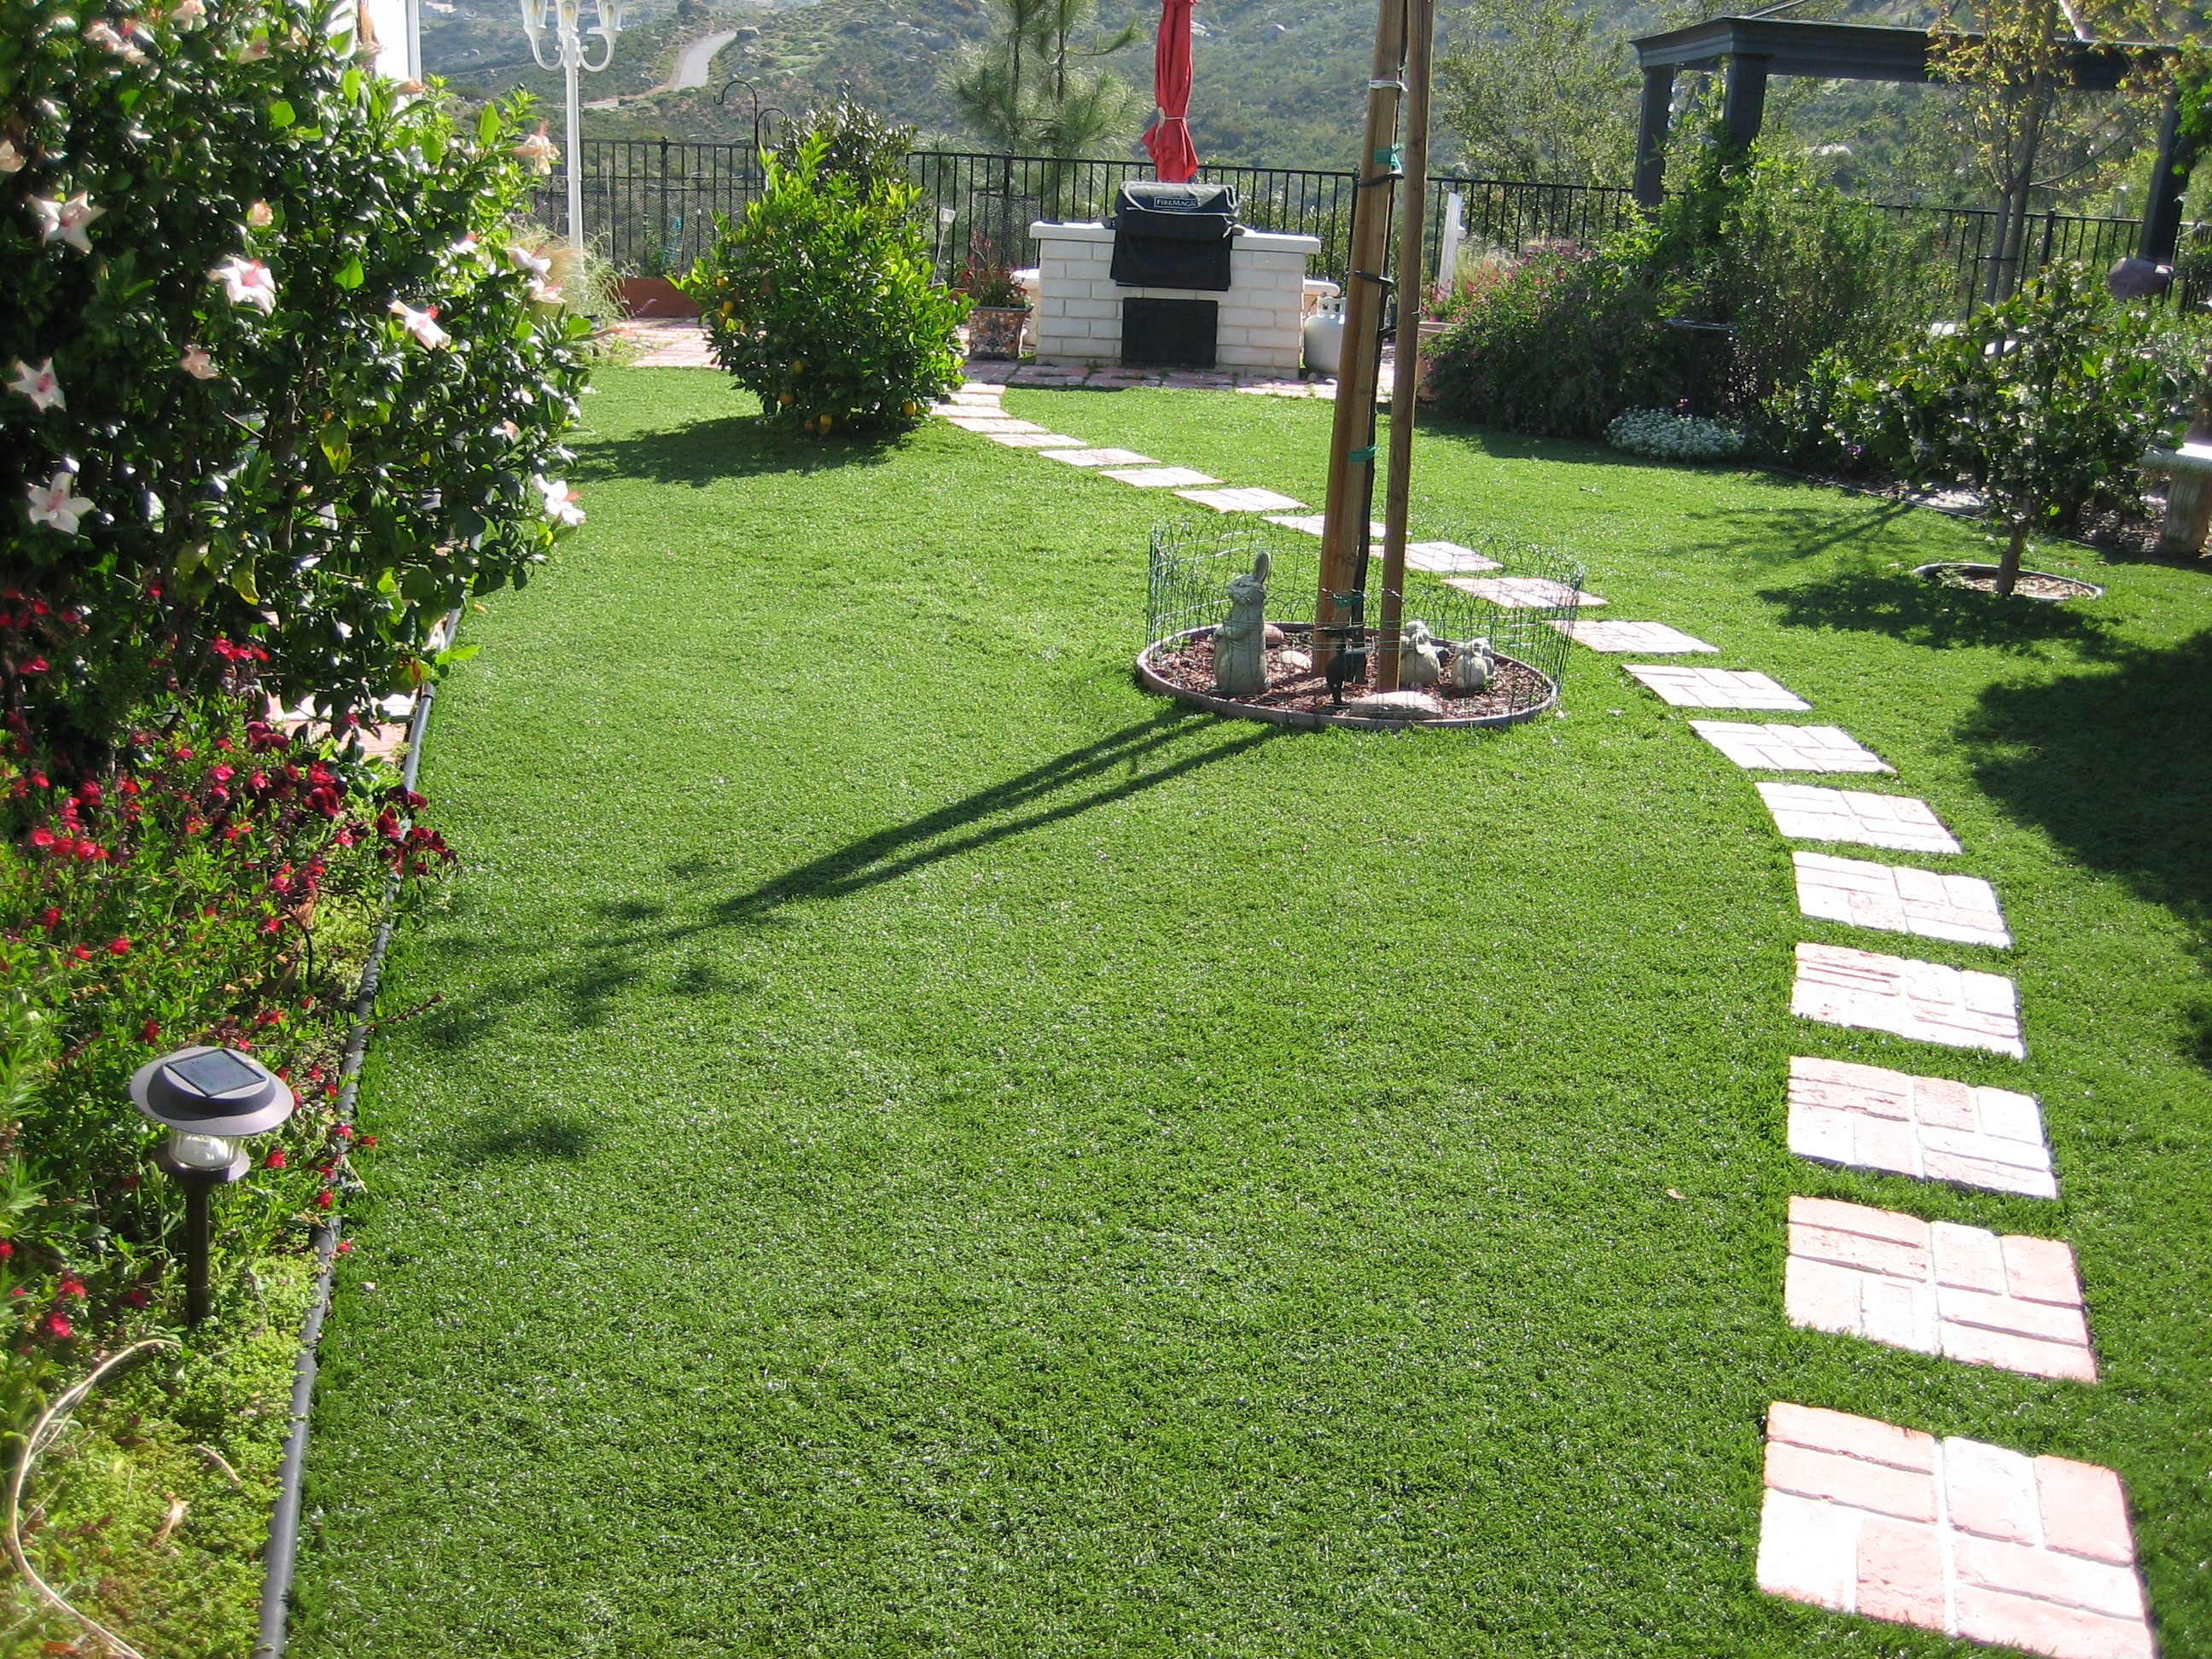 san diegans using synthetic grass to conserve water kpbs